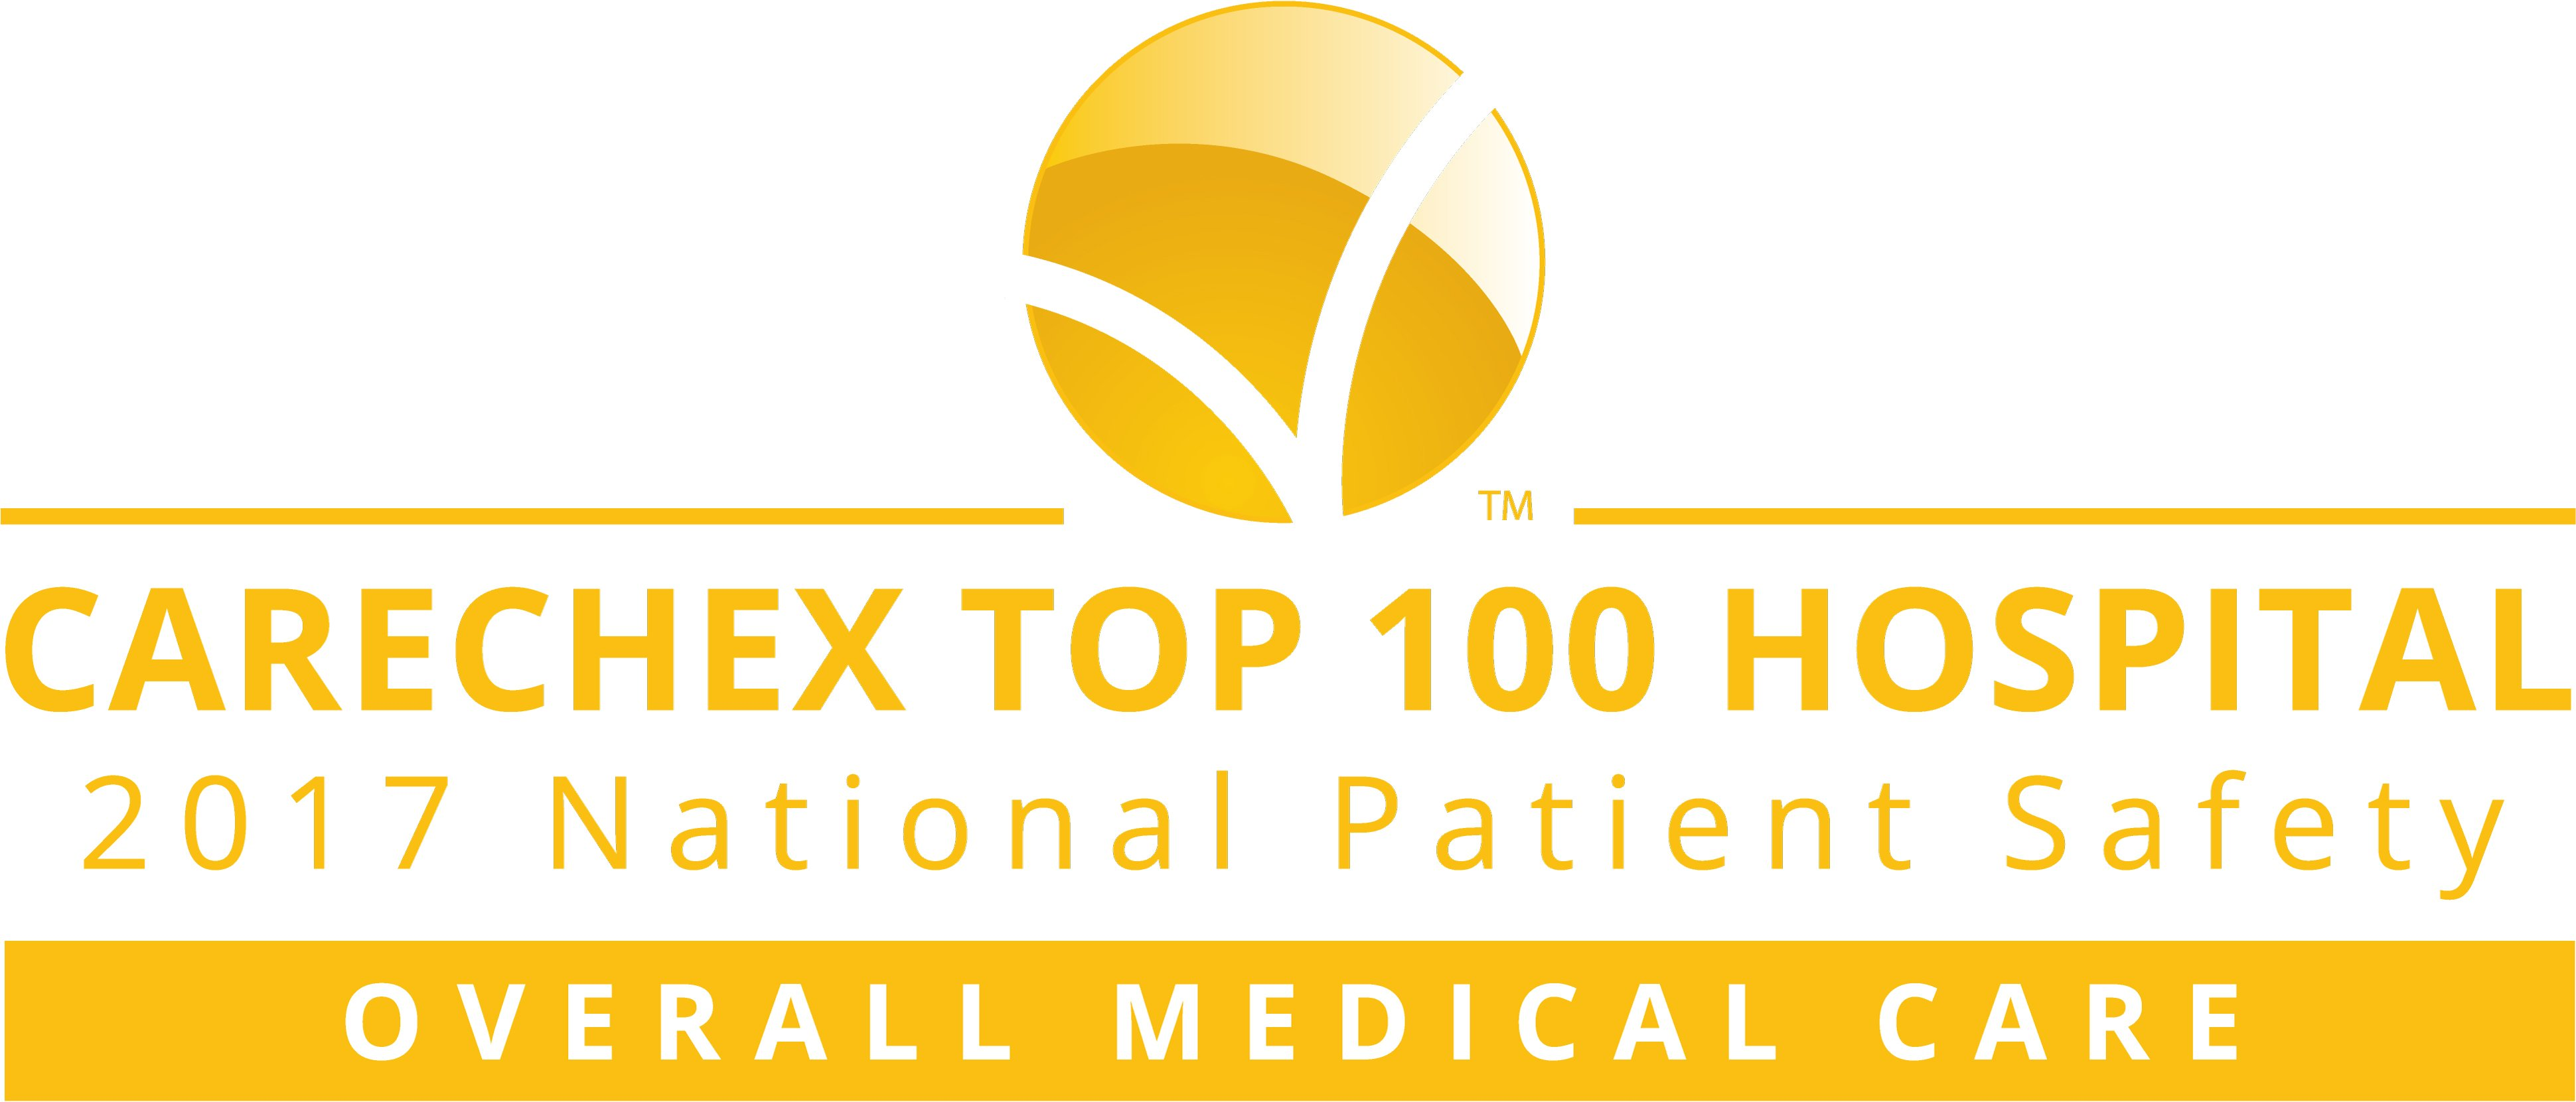 Carechex Top 100 Hospital